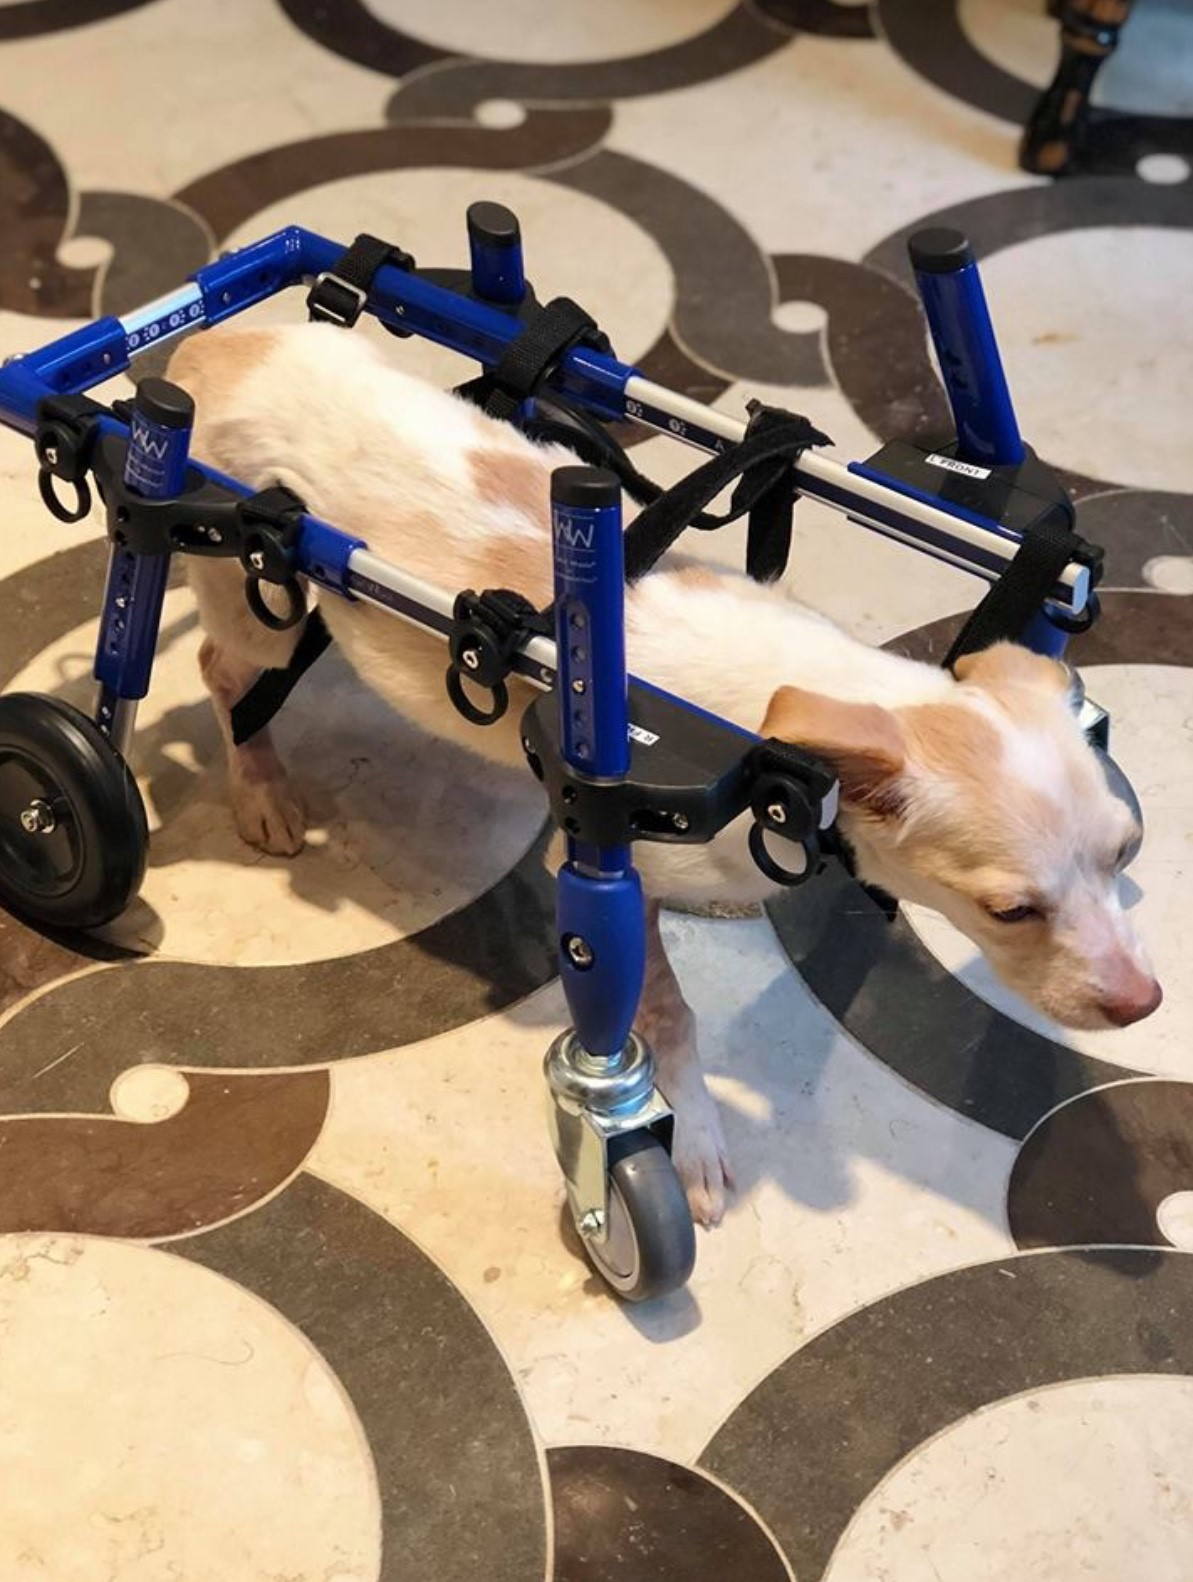 Diego in his new wheels!